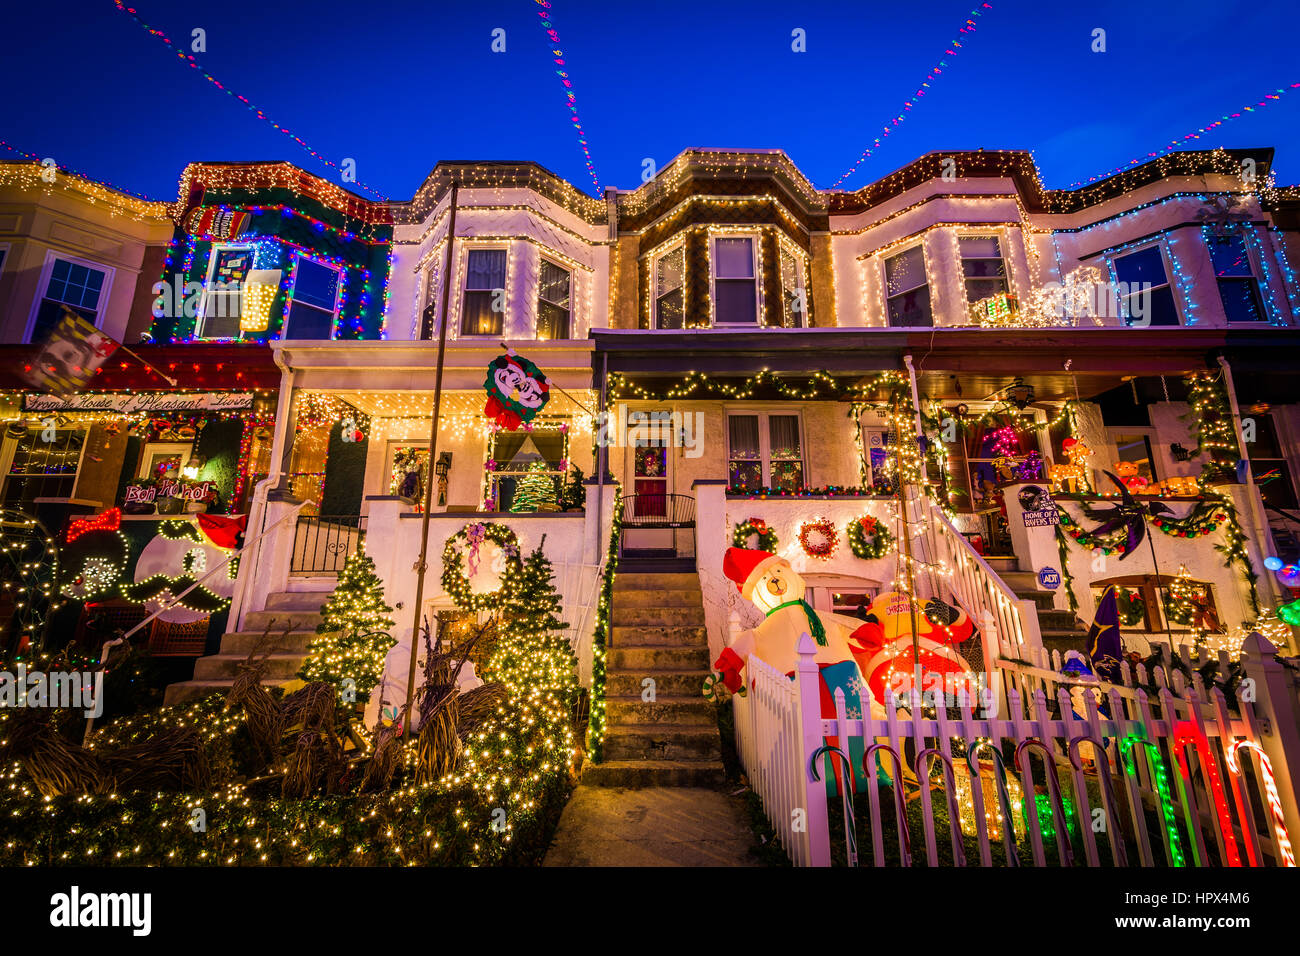 stock photo the miracle on 34th street christmas lights at night in hampden baltimore maryland - Christmas Lights Maryland